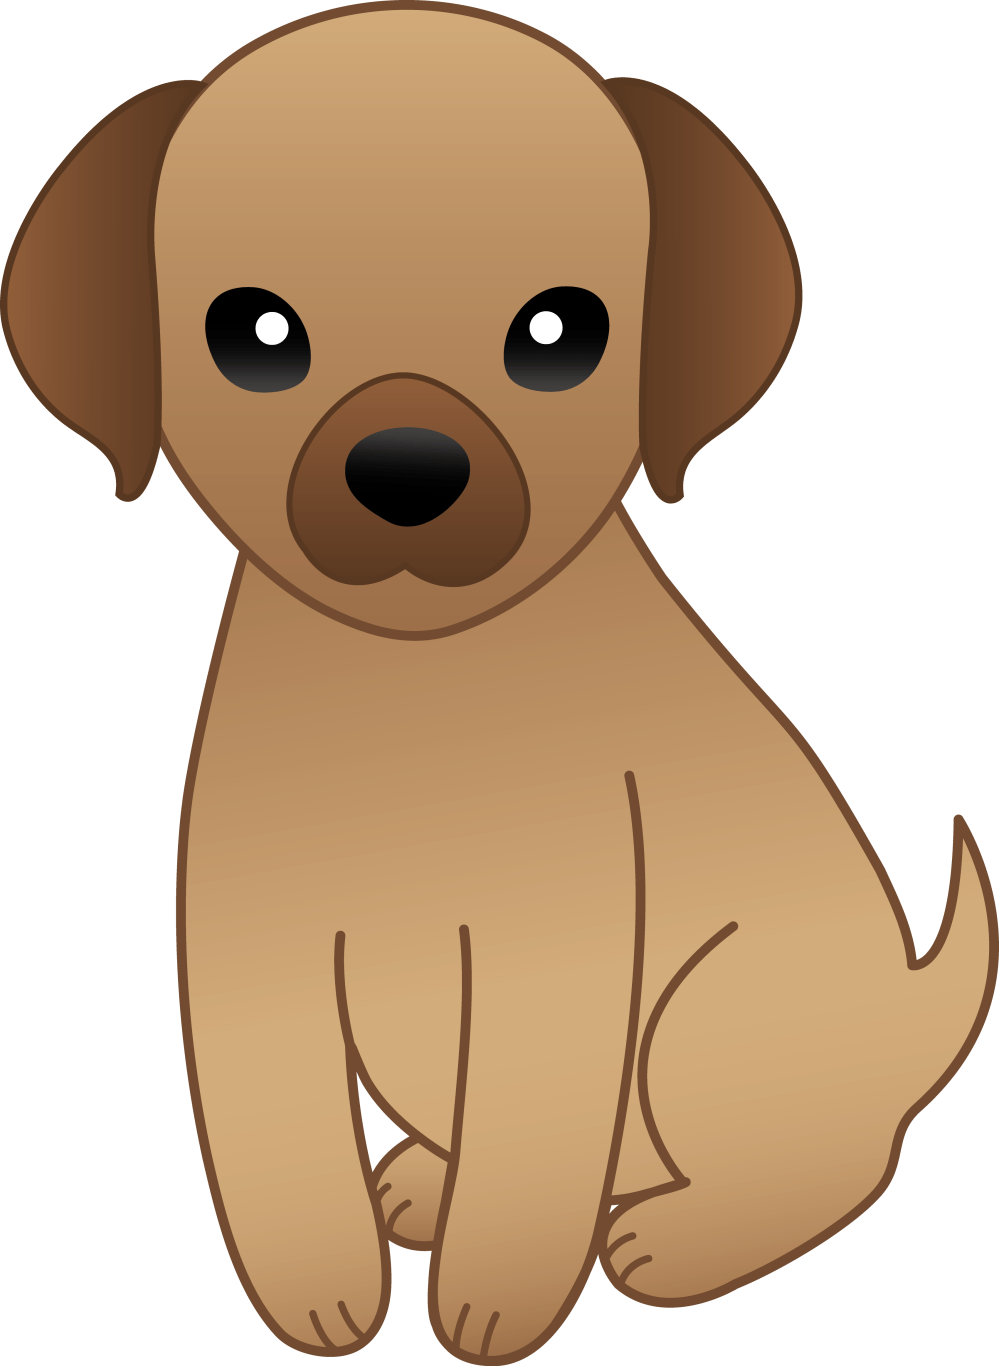 medium resolution of dog images 1428769 license personal use